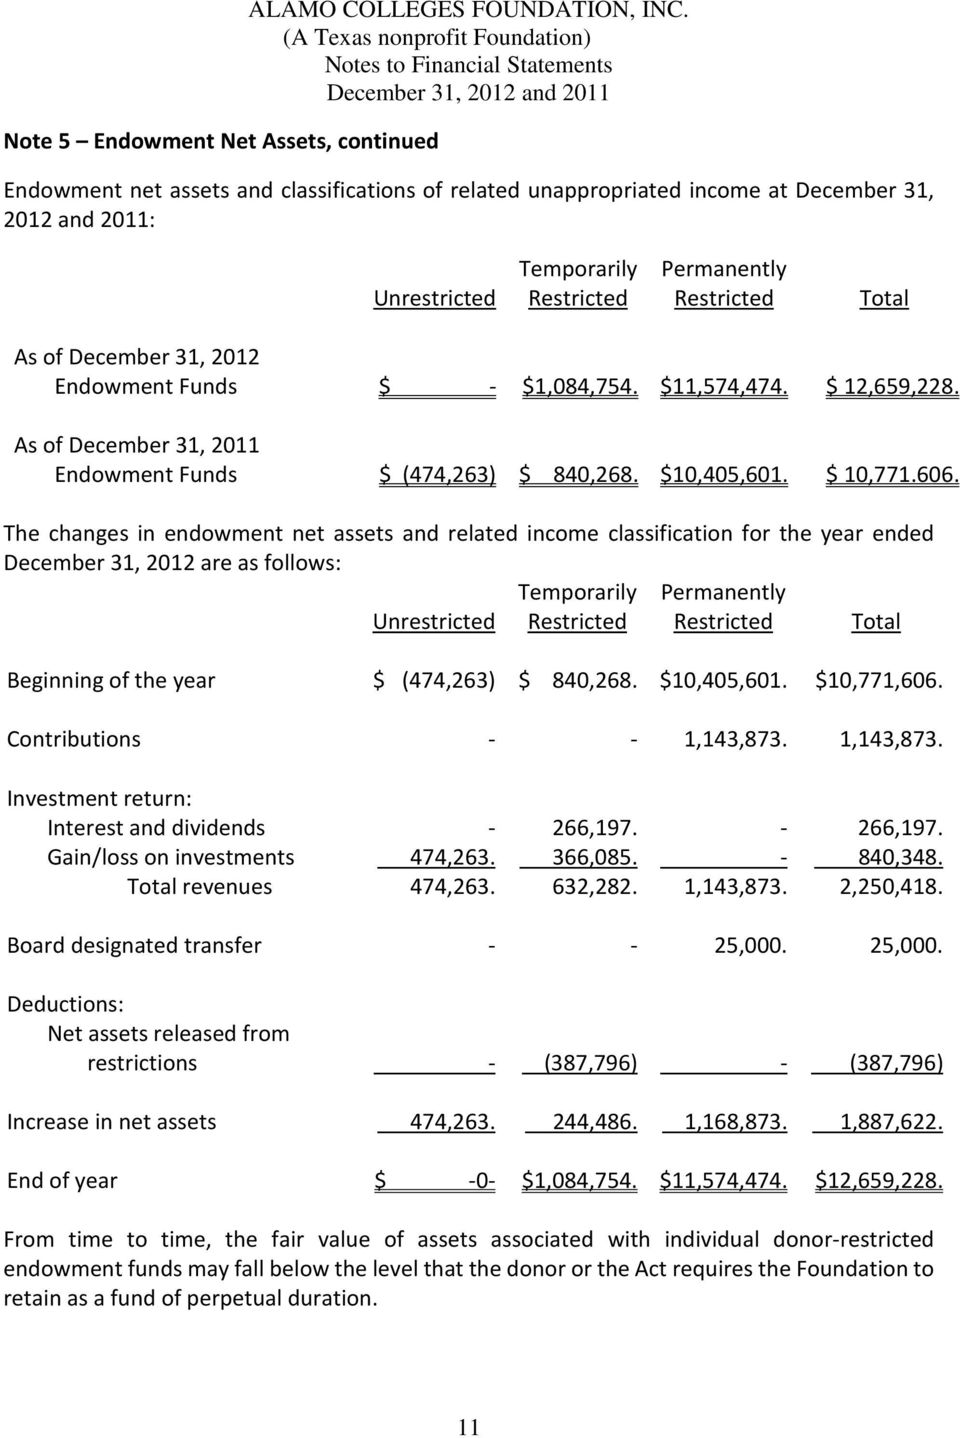 Endowment Funds $ - $1,084,754. $11,574,474. $ 12,659,228. As of December 31, 2011 Endowment Funds $ (474,263) $ 840,268. $10,405,601. $ 10,771.606.